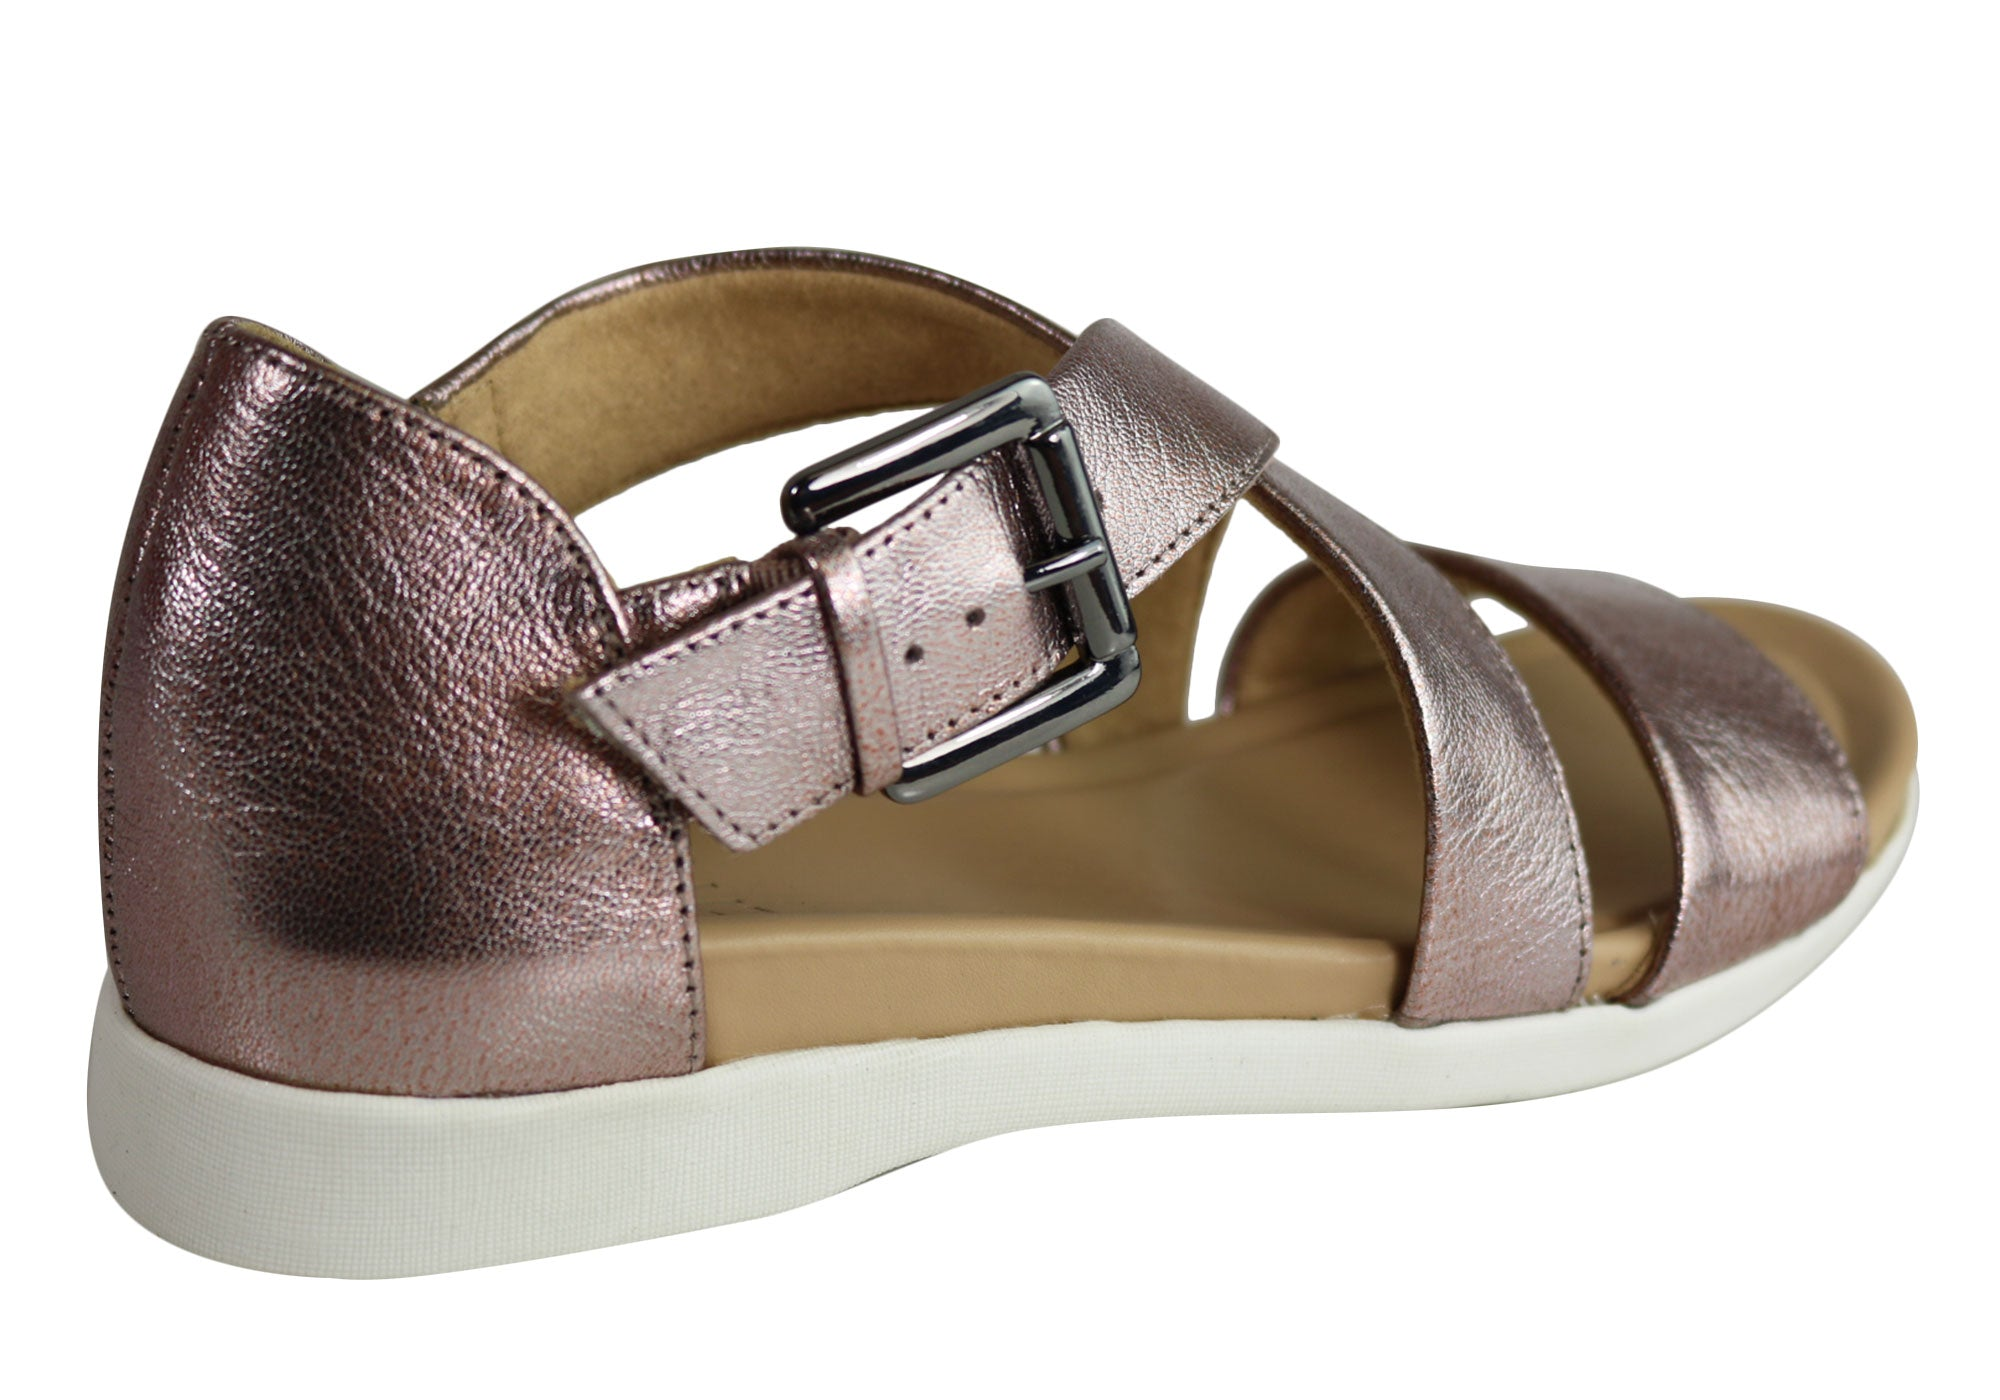 NEW NATURALIZER ELLIOT WOMENS COMFORTABLE CLOSED BACK LEATHER FLAT SANDALS